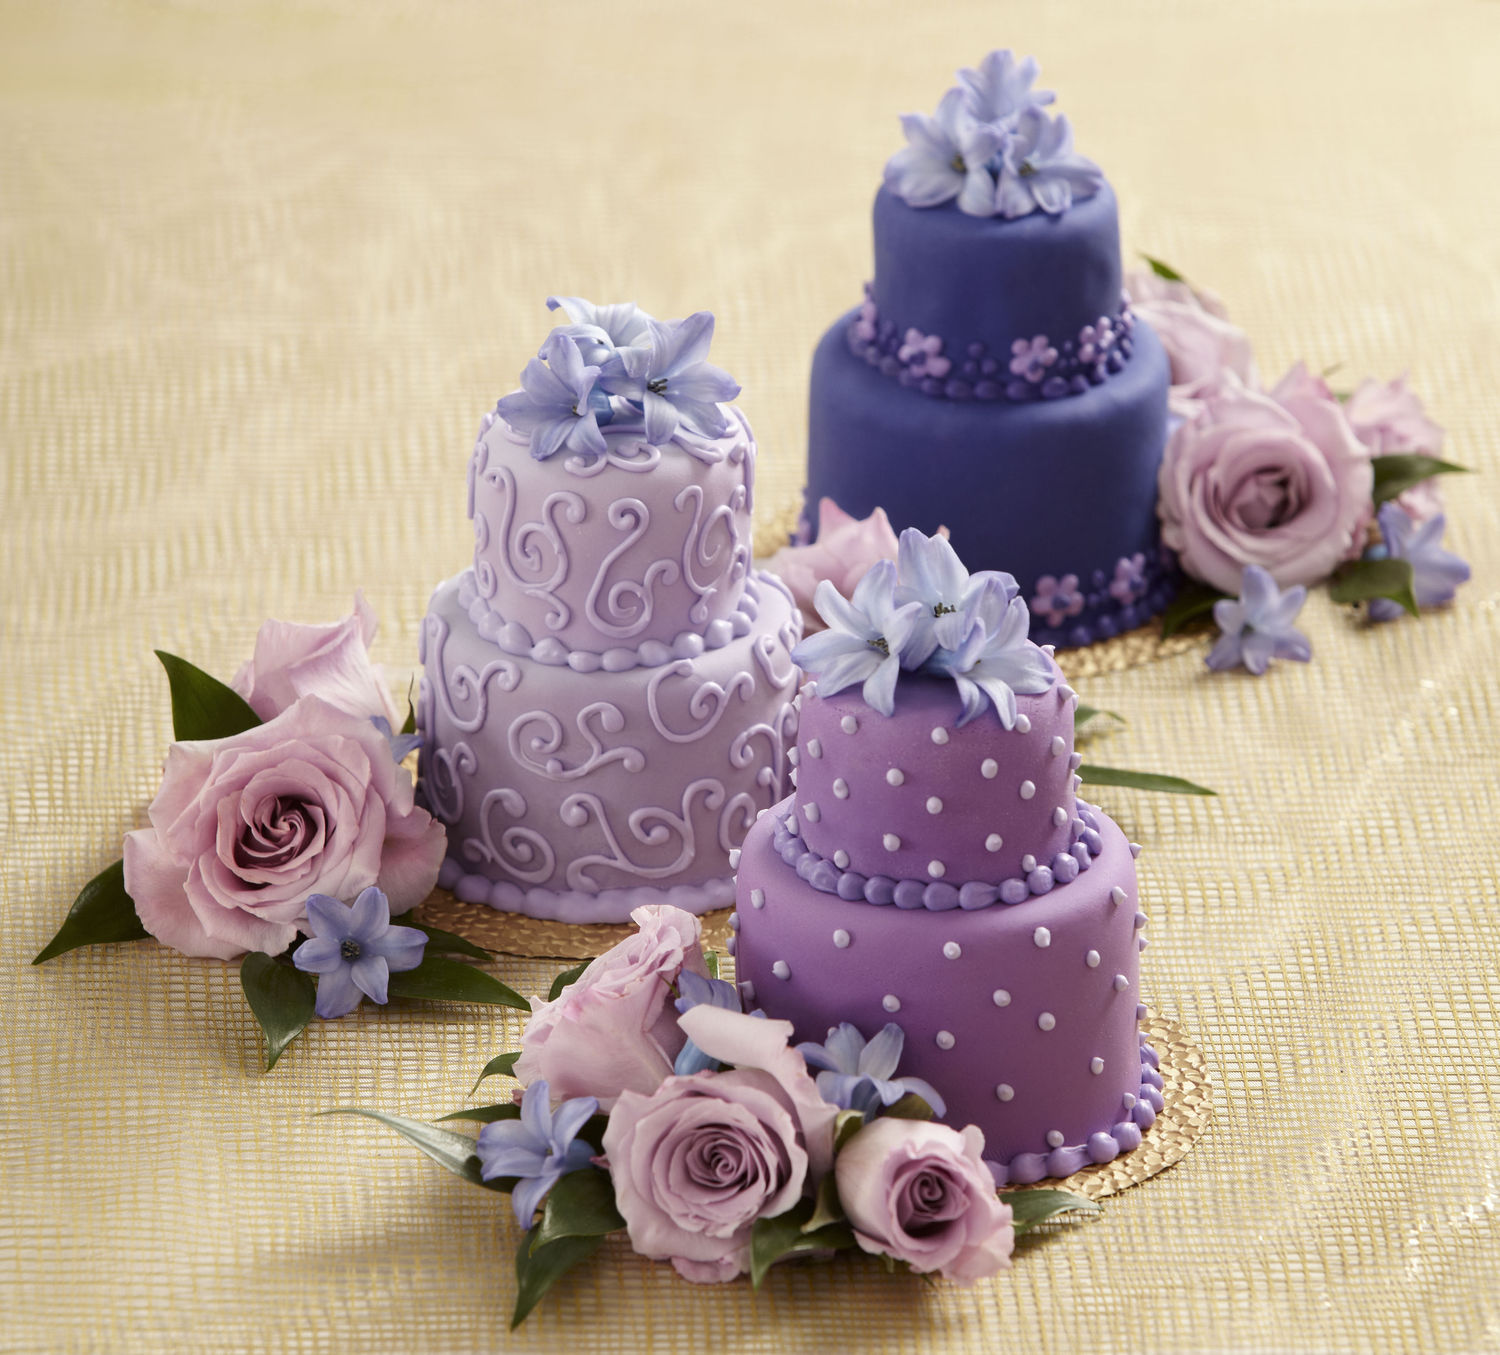 Cake Decor Items : Cake Decorations